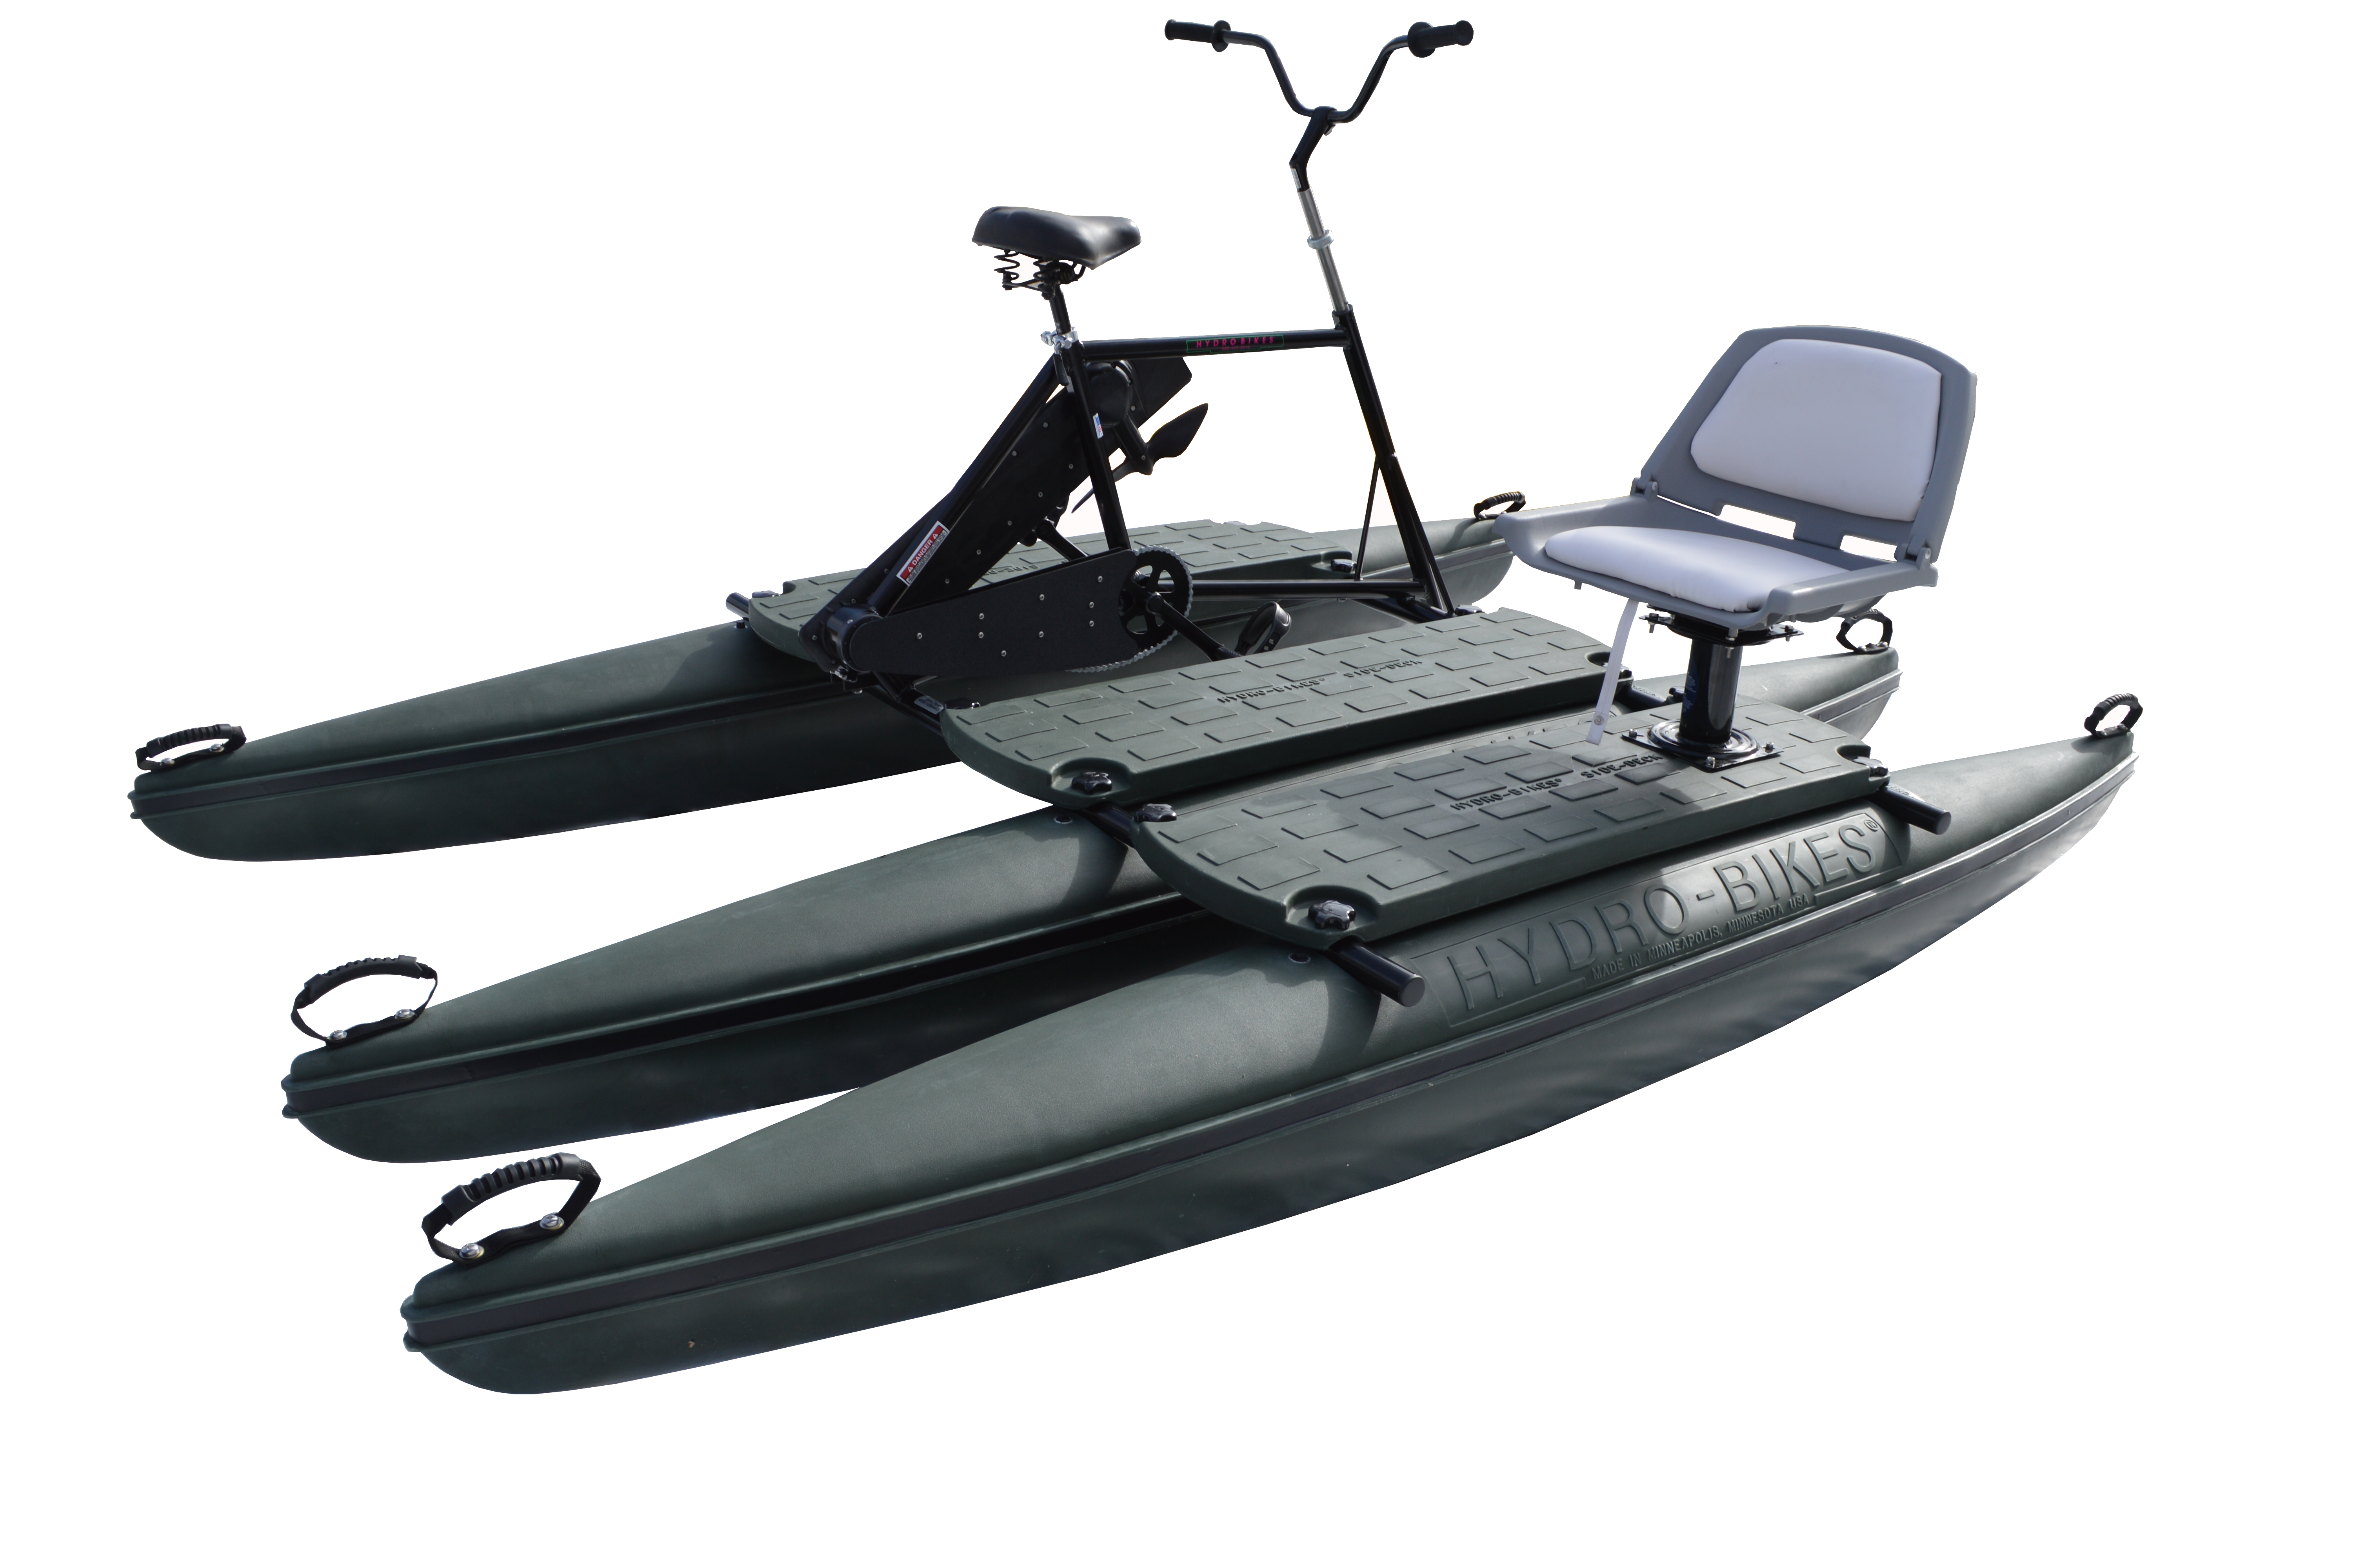 The Hydrobike Angler